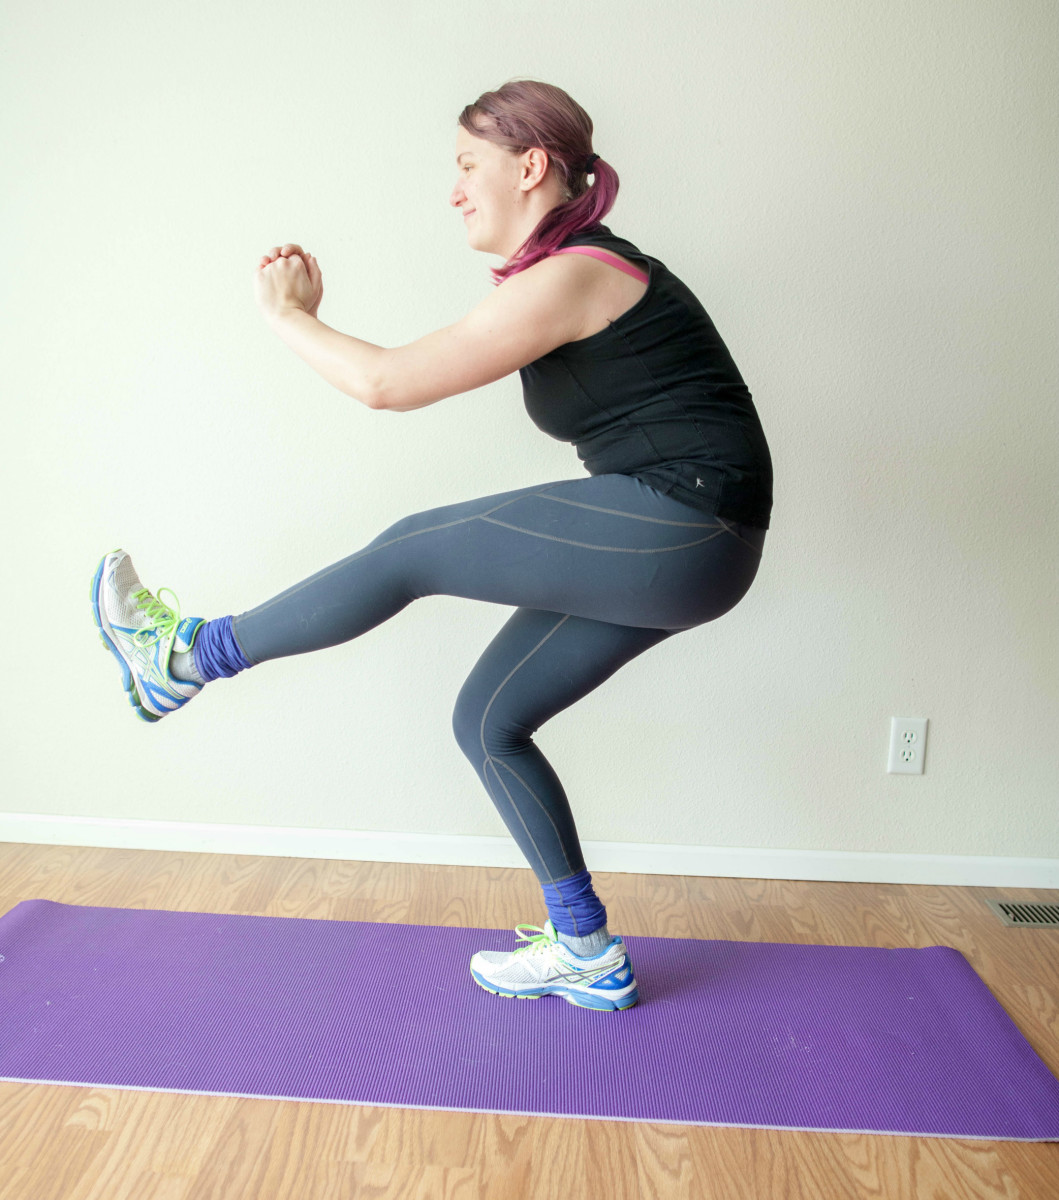 Pistol squats are challenging, but worth the effort!